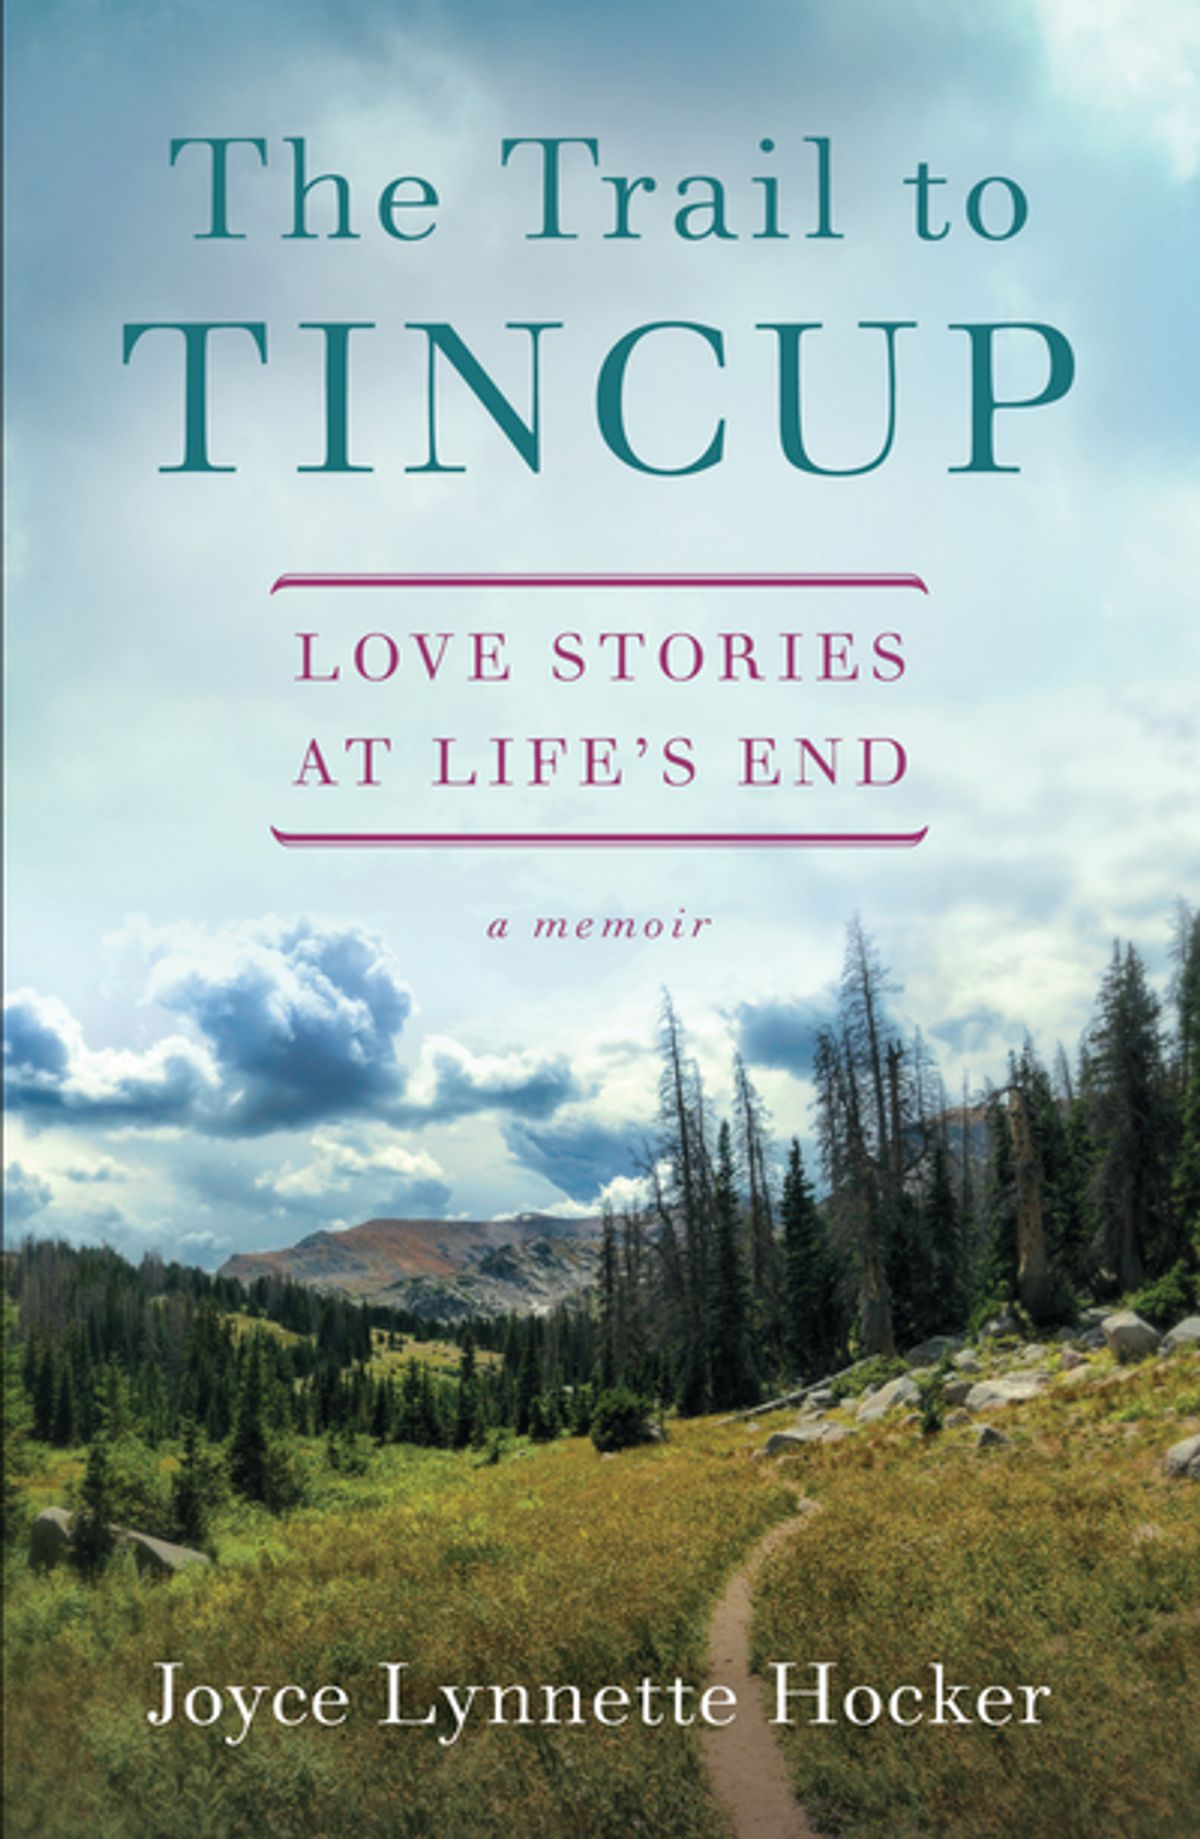 The Trail to Tincup : Love Stories at Life's End